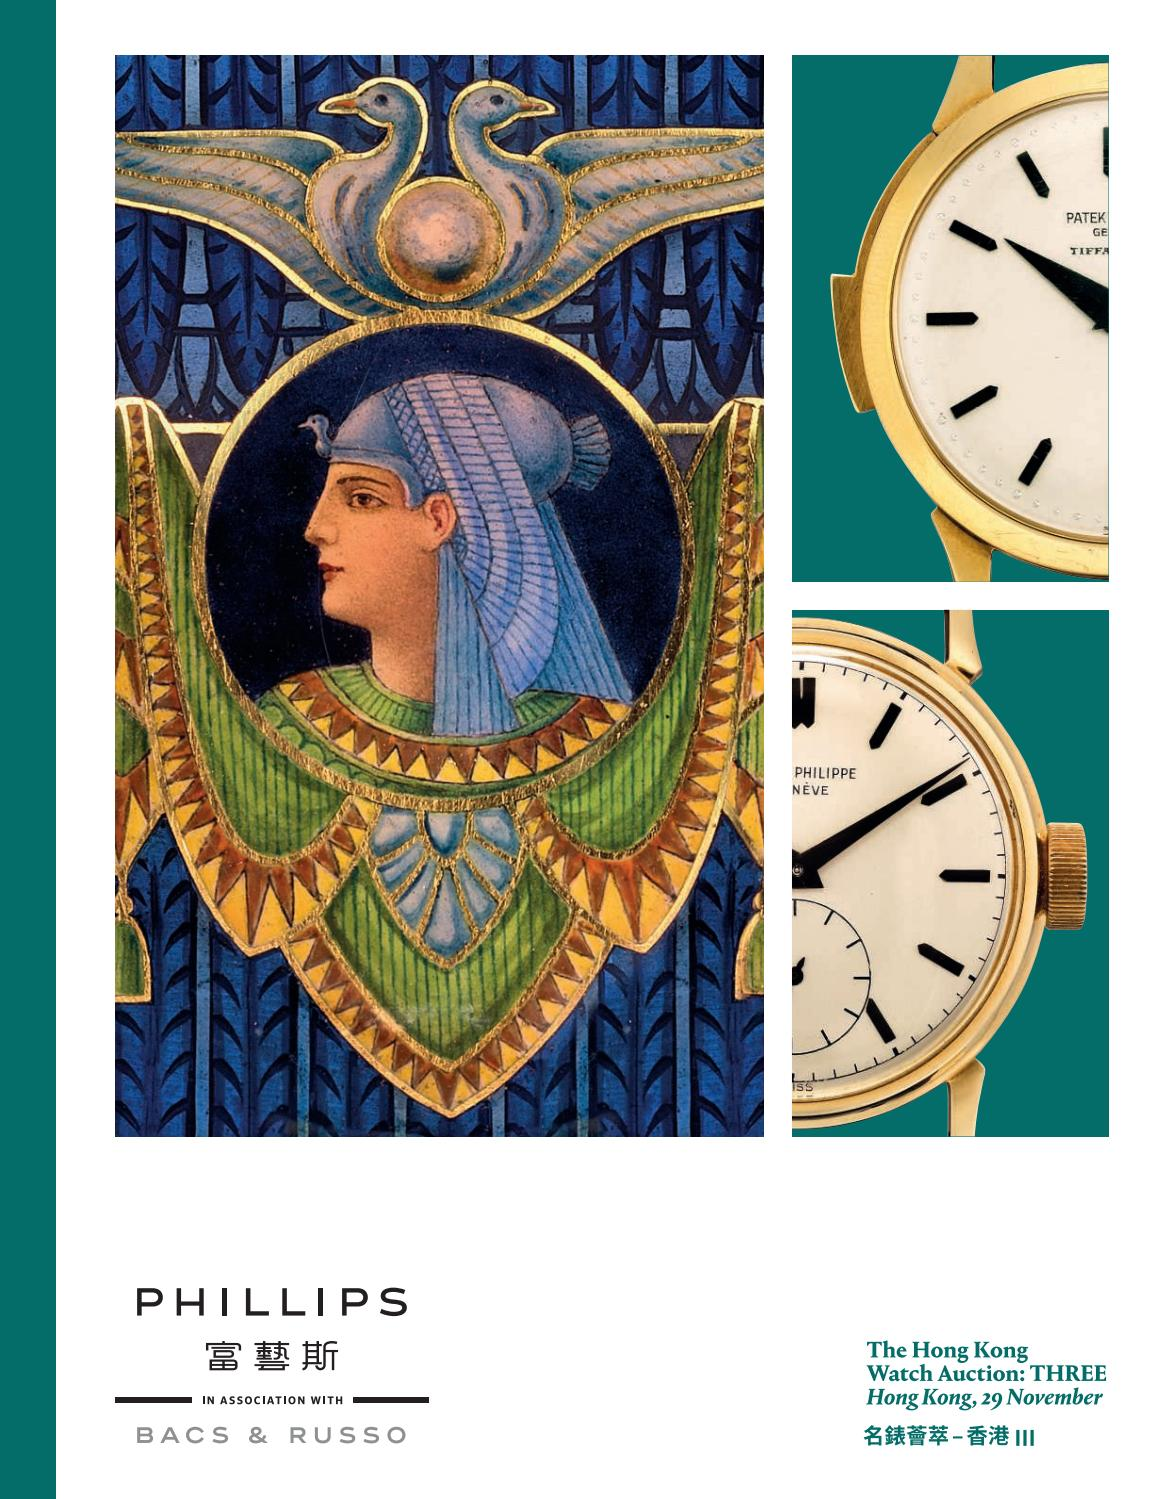 The Hong Kong Watch Auction Three Catalogue By Phillips Issuu Rolex Parts Diagram For Cal 3035 1 Gent39s Datejust As It